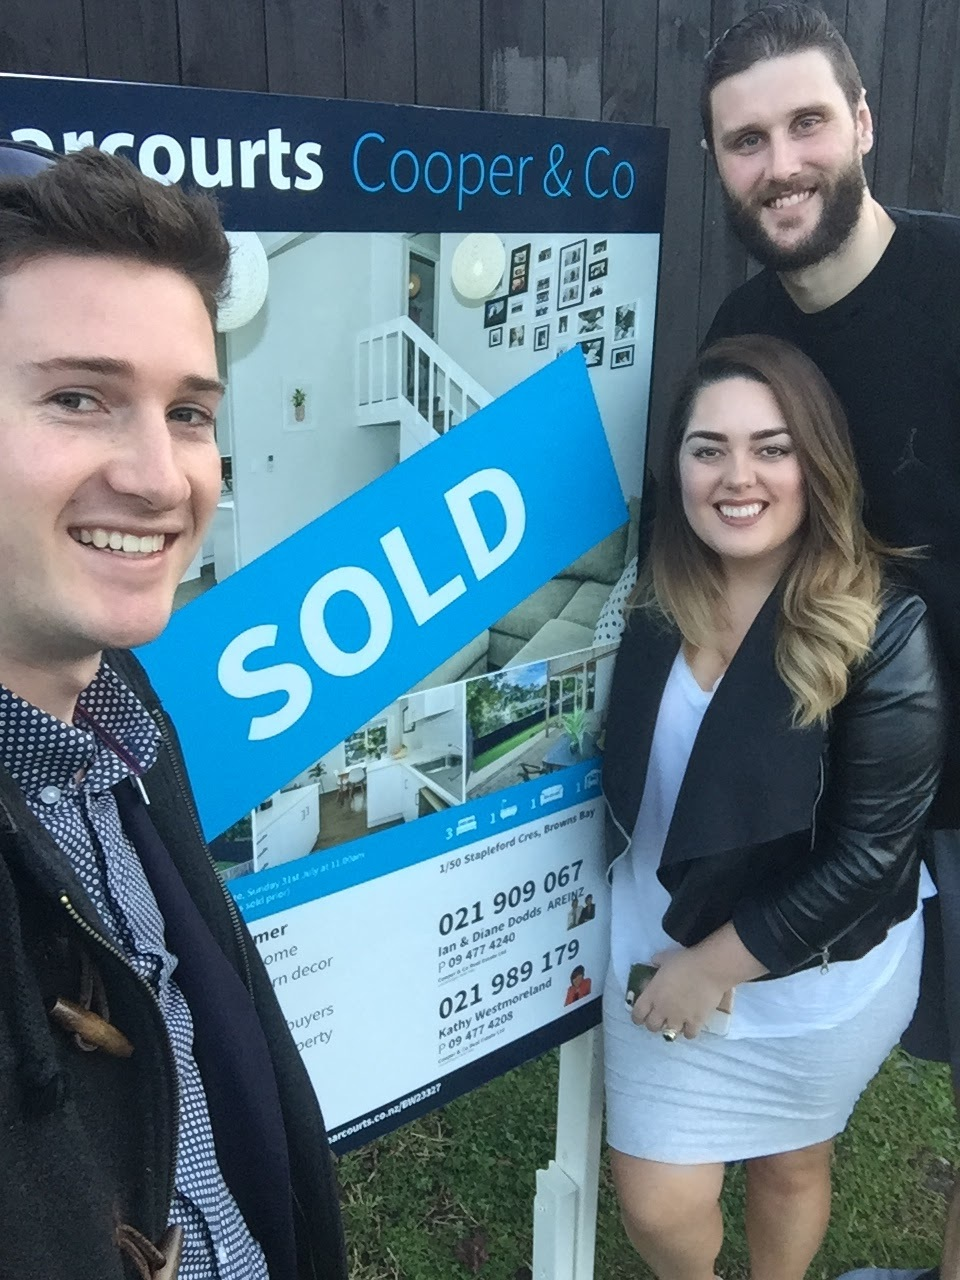 Bailee & Alex - House buying isn't always fun, actually it was nightmare until we met Matt! After dipping our toe in the market and quickly realising the industry isn't just competitive but also moves at the speed of light... Matt was a breath of fresh air when it came to agents. He listened to absolutely every little comment we made on properties (both positive and negative) and really narrowed down the guess work when presenting homes to us to look at, he nailed the job. It took a little over 2 weeks for him to find us the PERFECT property, he made the buying and auction process so straight forward and even guided us through parts we were completely clueless in. Its not just the fact that he is good at what he does but he truly cared about us (his clients) and our experience of buying our home. In future 100% buying and selling- he will be my first call!Thank you Matt